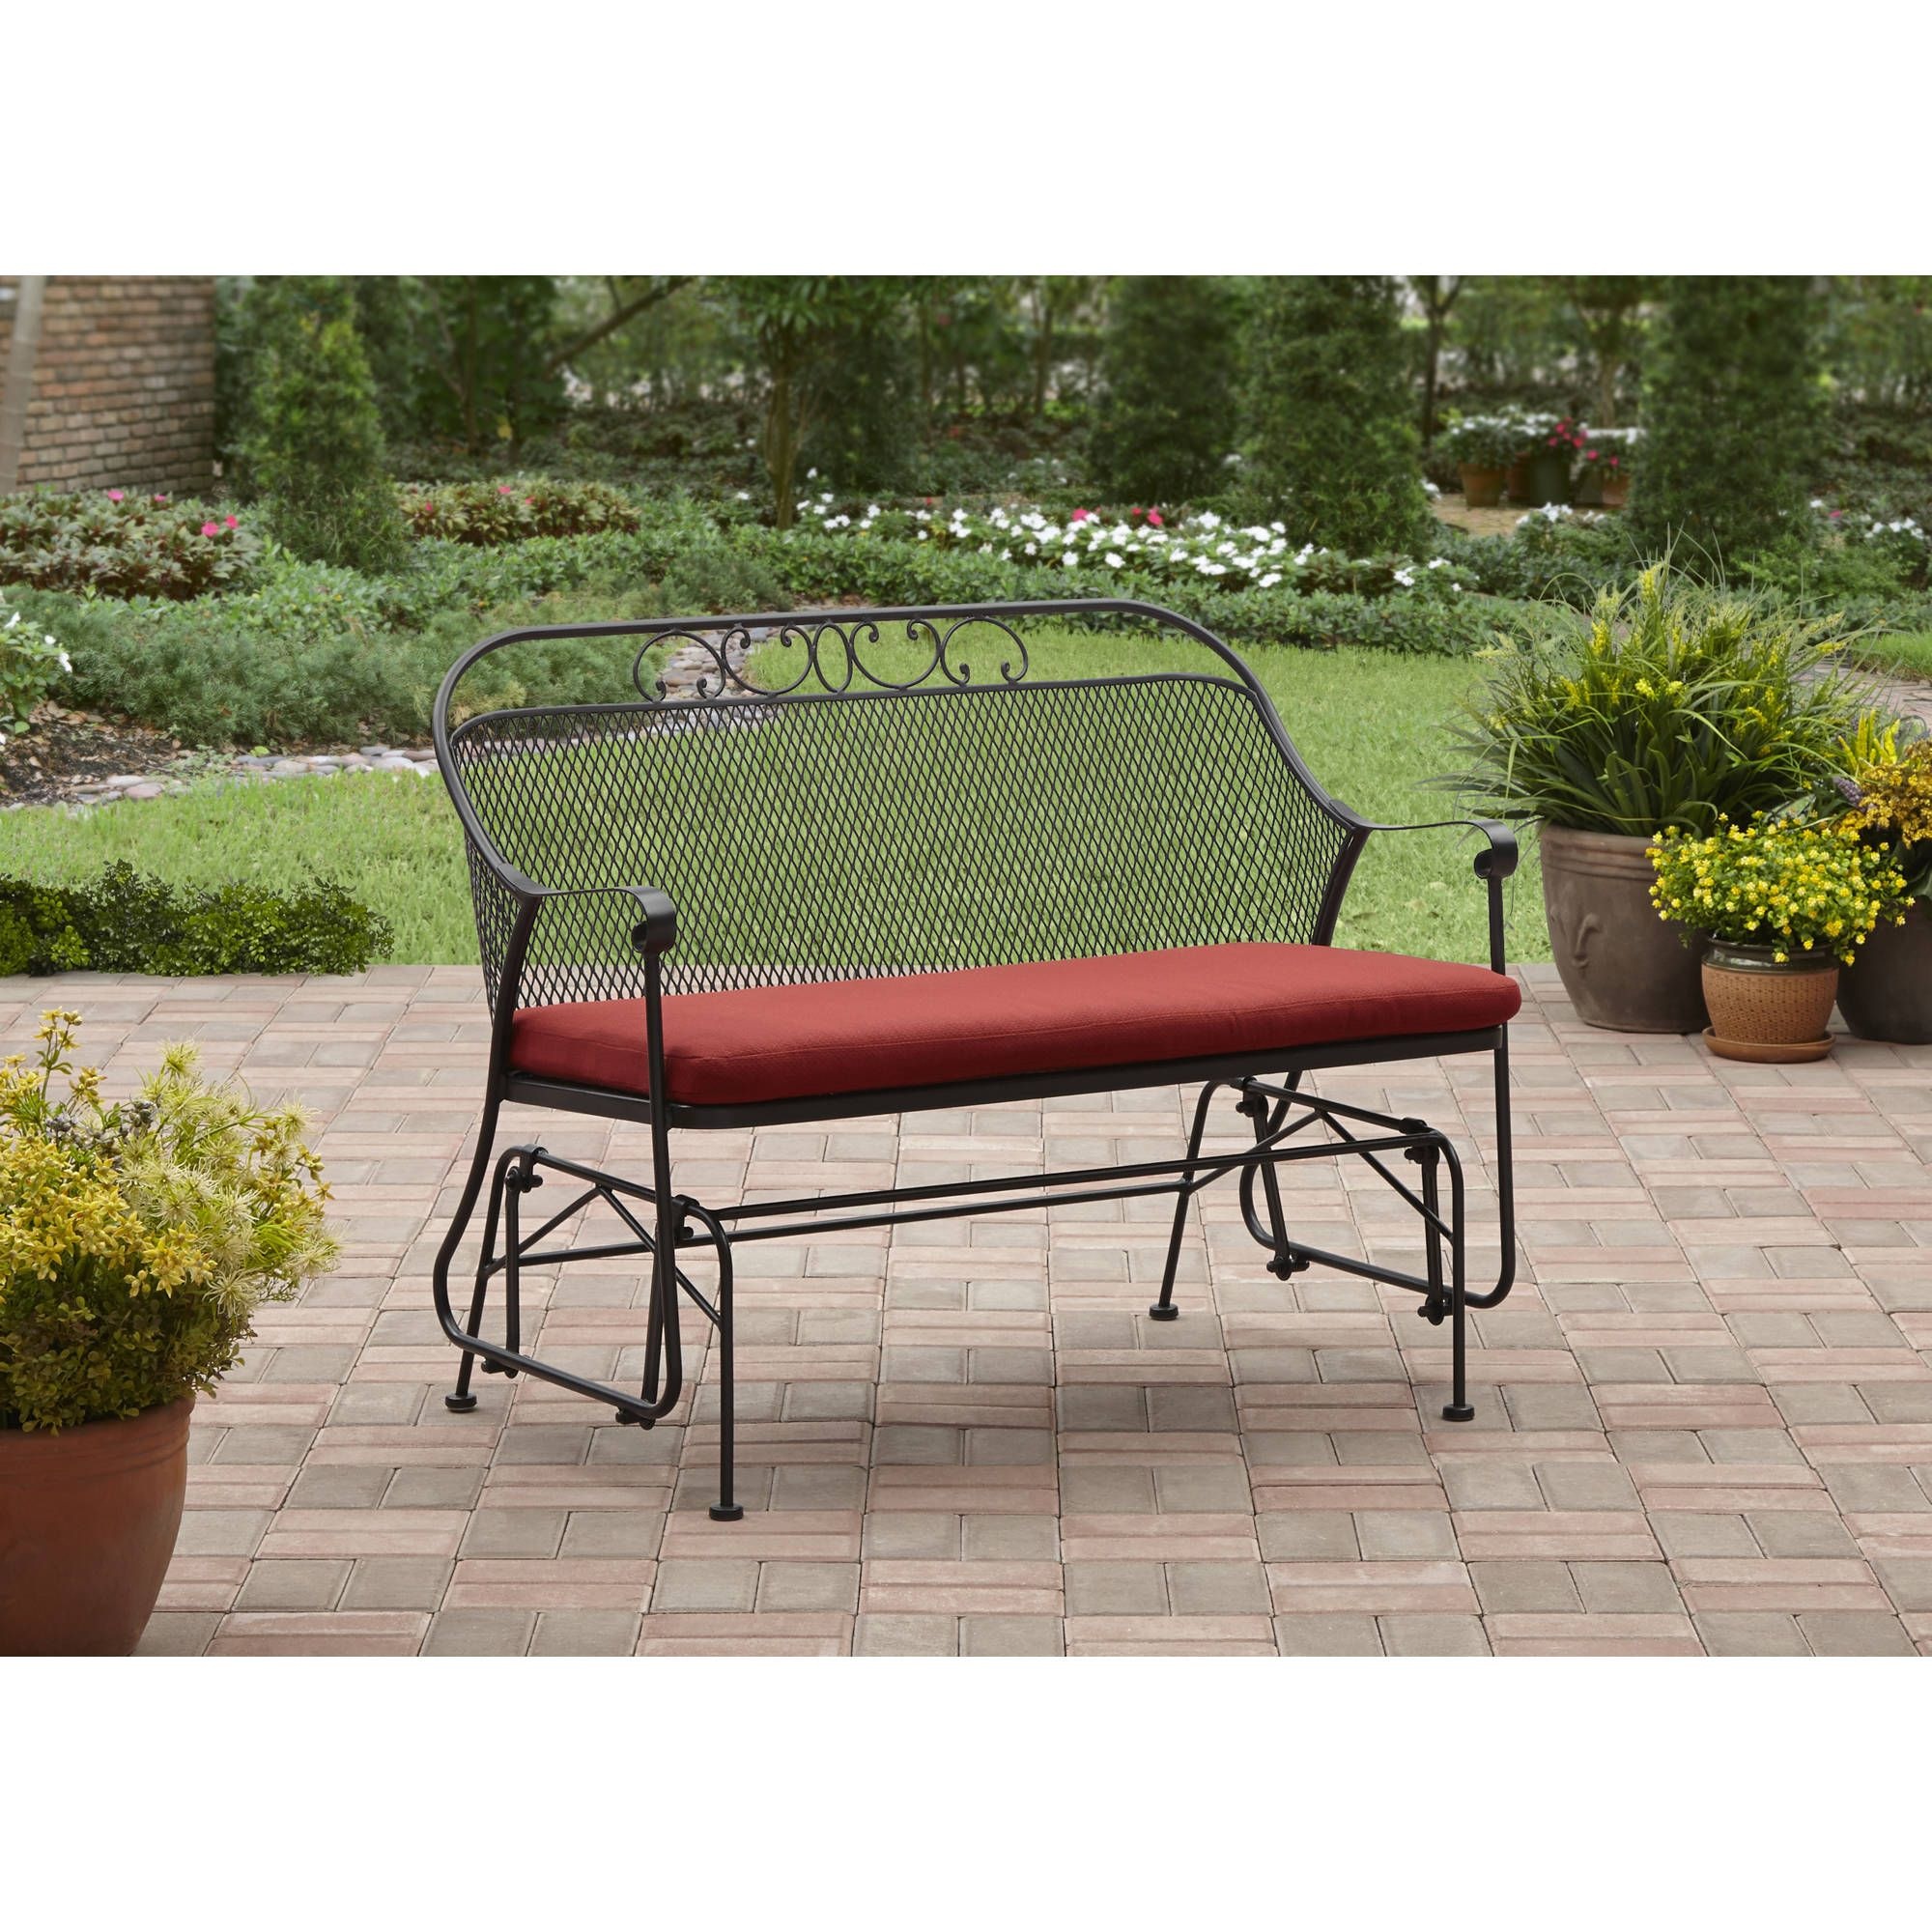 Enjoy Relaxing On The Red Better Homes And Gardens Clayton Within 2 Person Antique Black Iron Outdoor Gliders (Image 16 of 25)